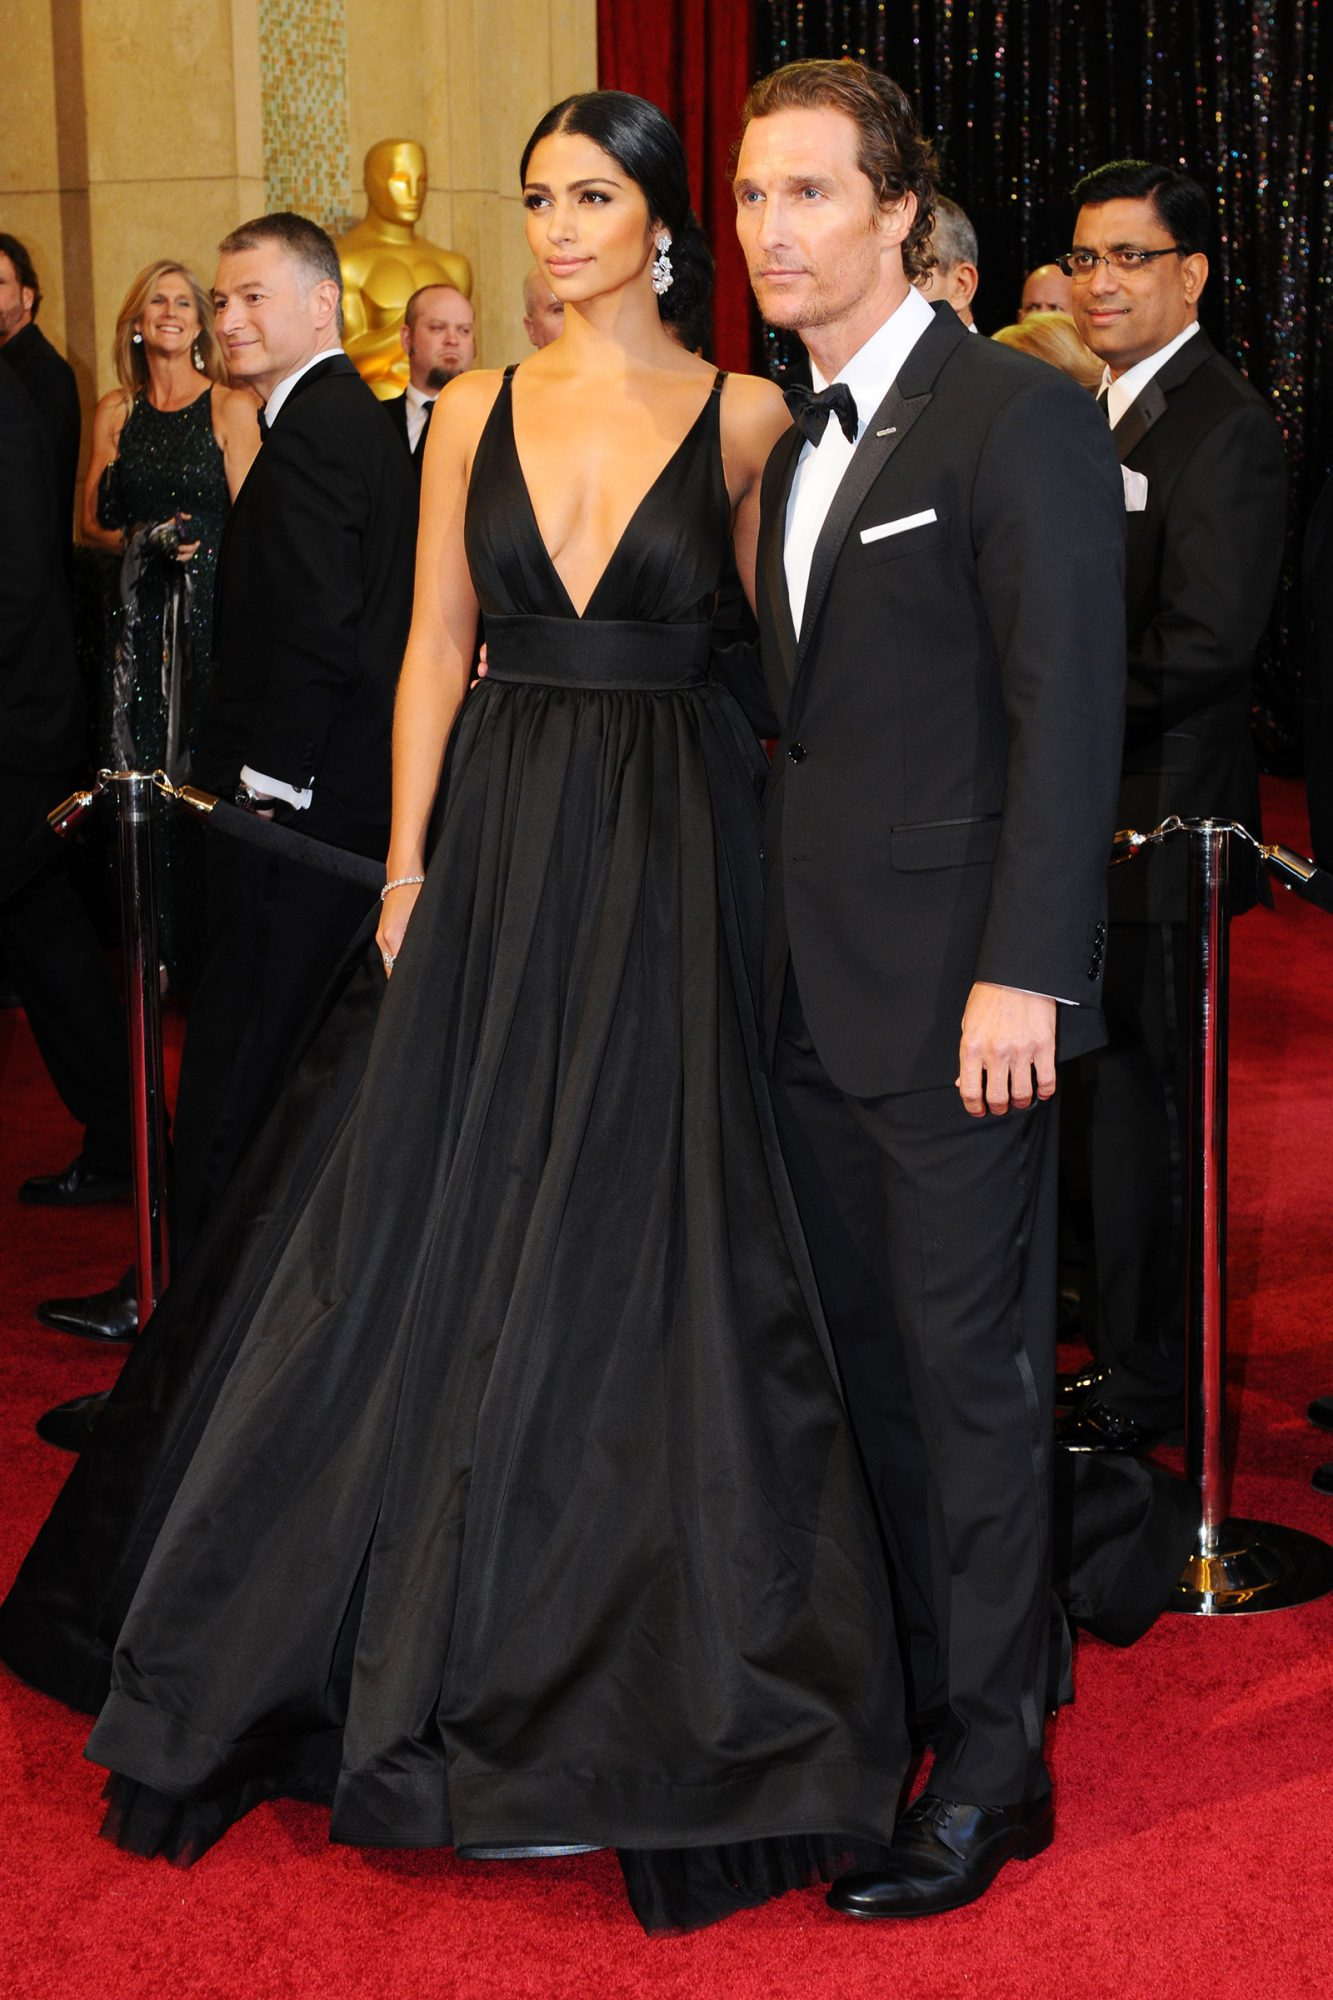 2011 Academy Awards, Camila Alves and Matthew McConaughey